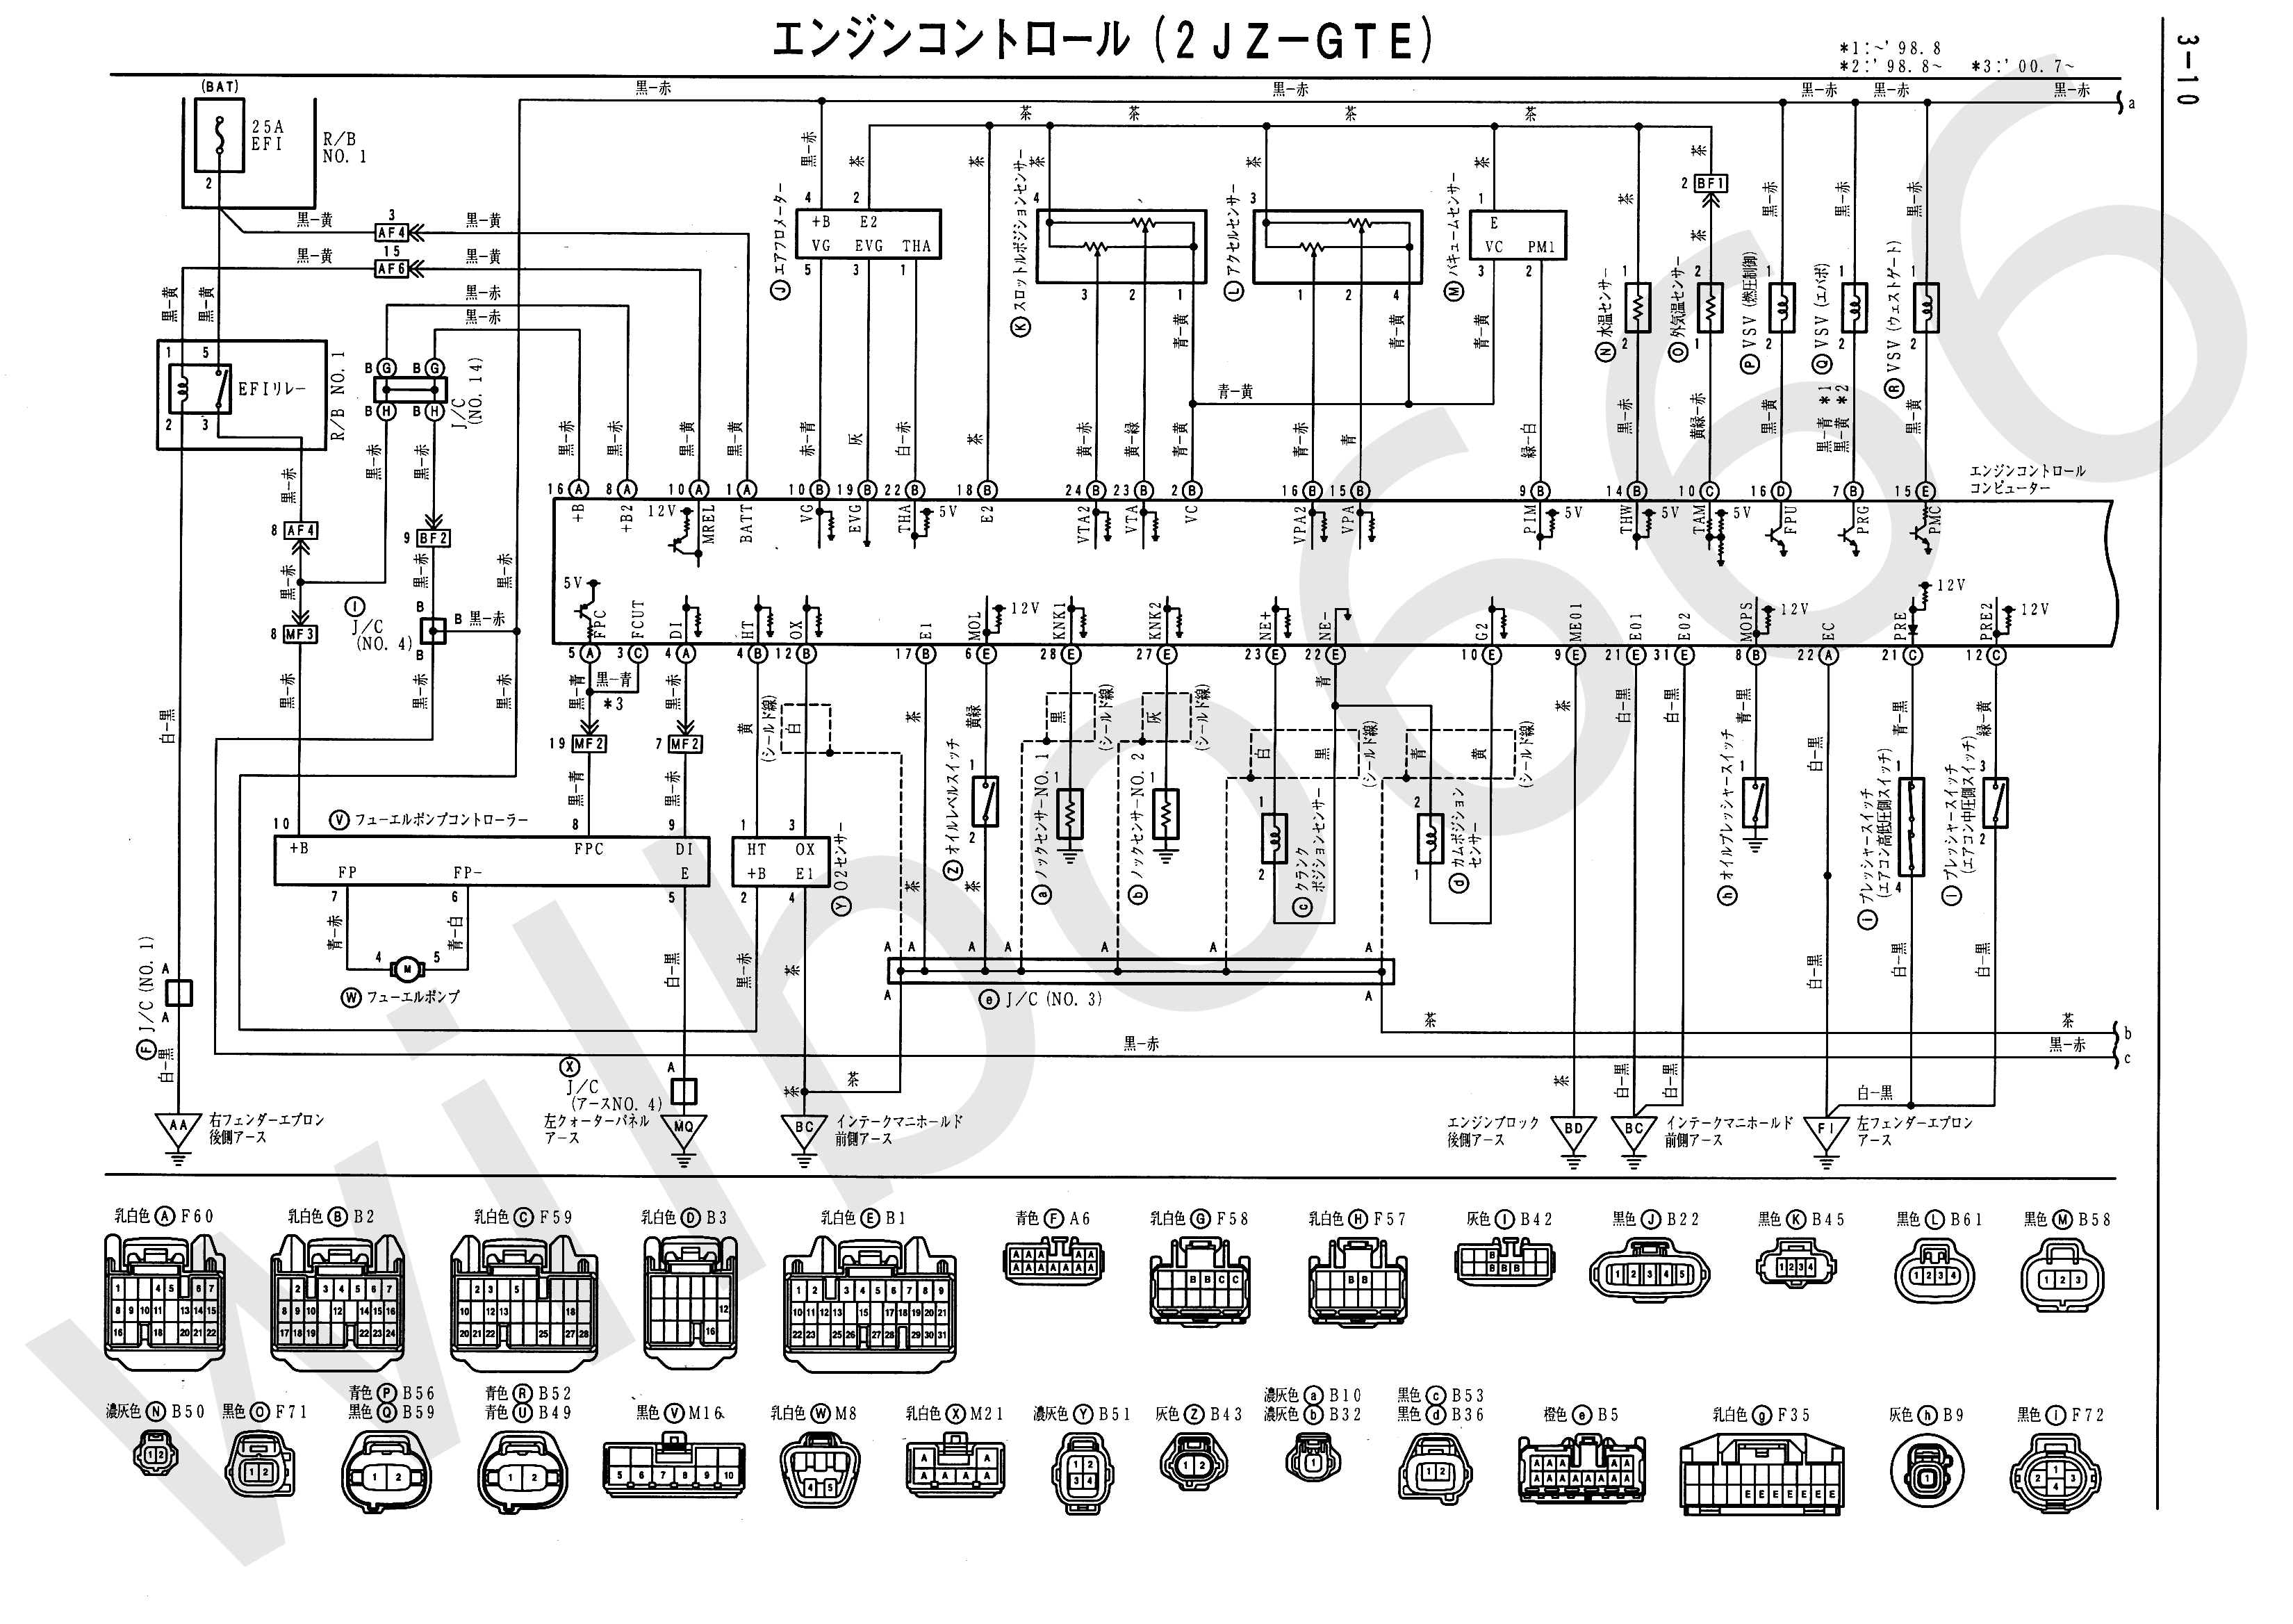 JZS161 Electrical Wiring Diagram 6748505 3 10 wilbo666 2jz gte vvti jzs161 aristo engine wiring 2jzgte wiring diagram at reclaimingppi.co